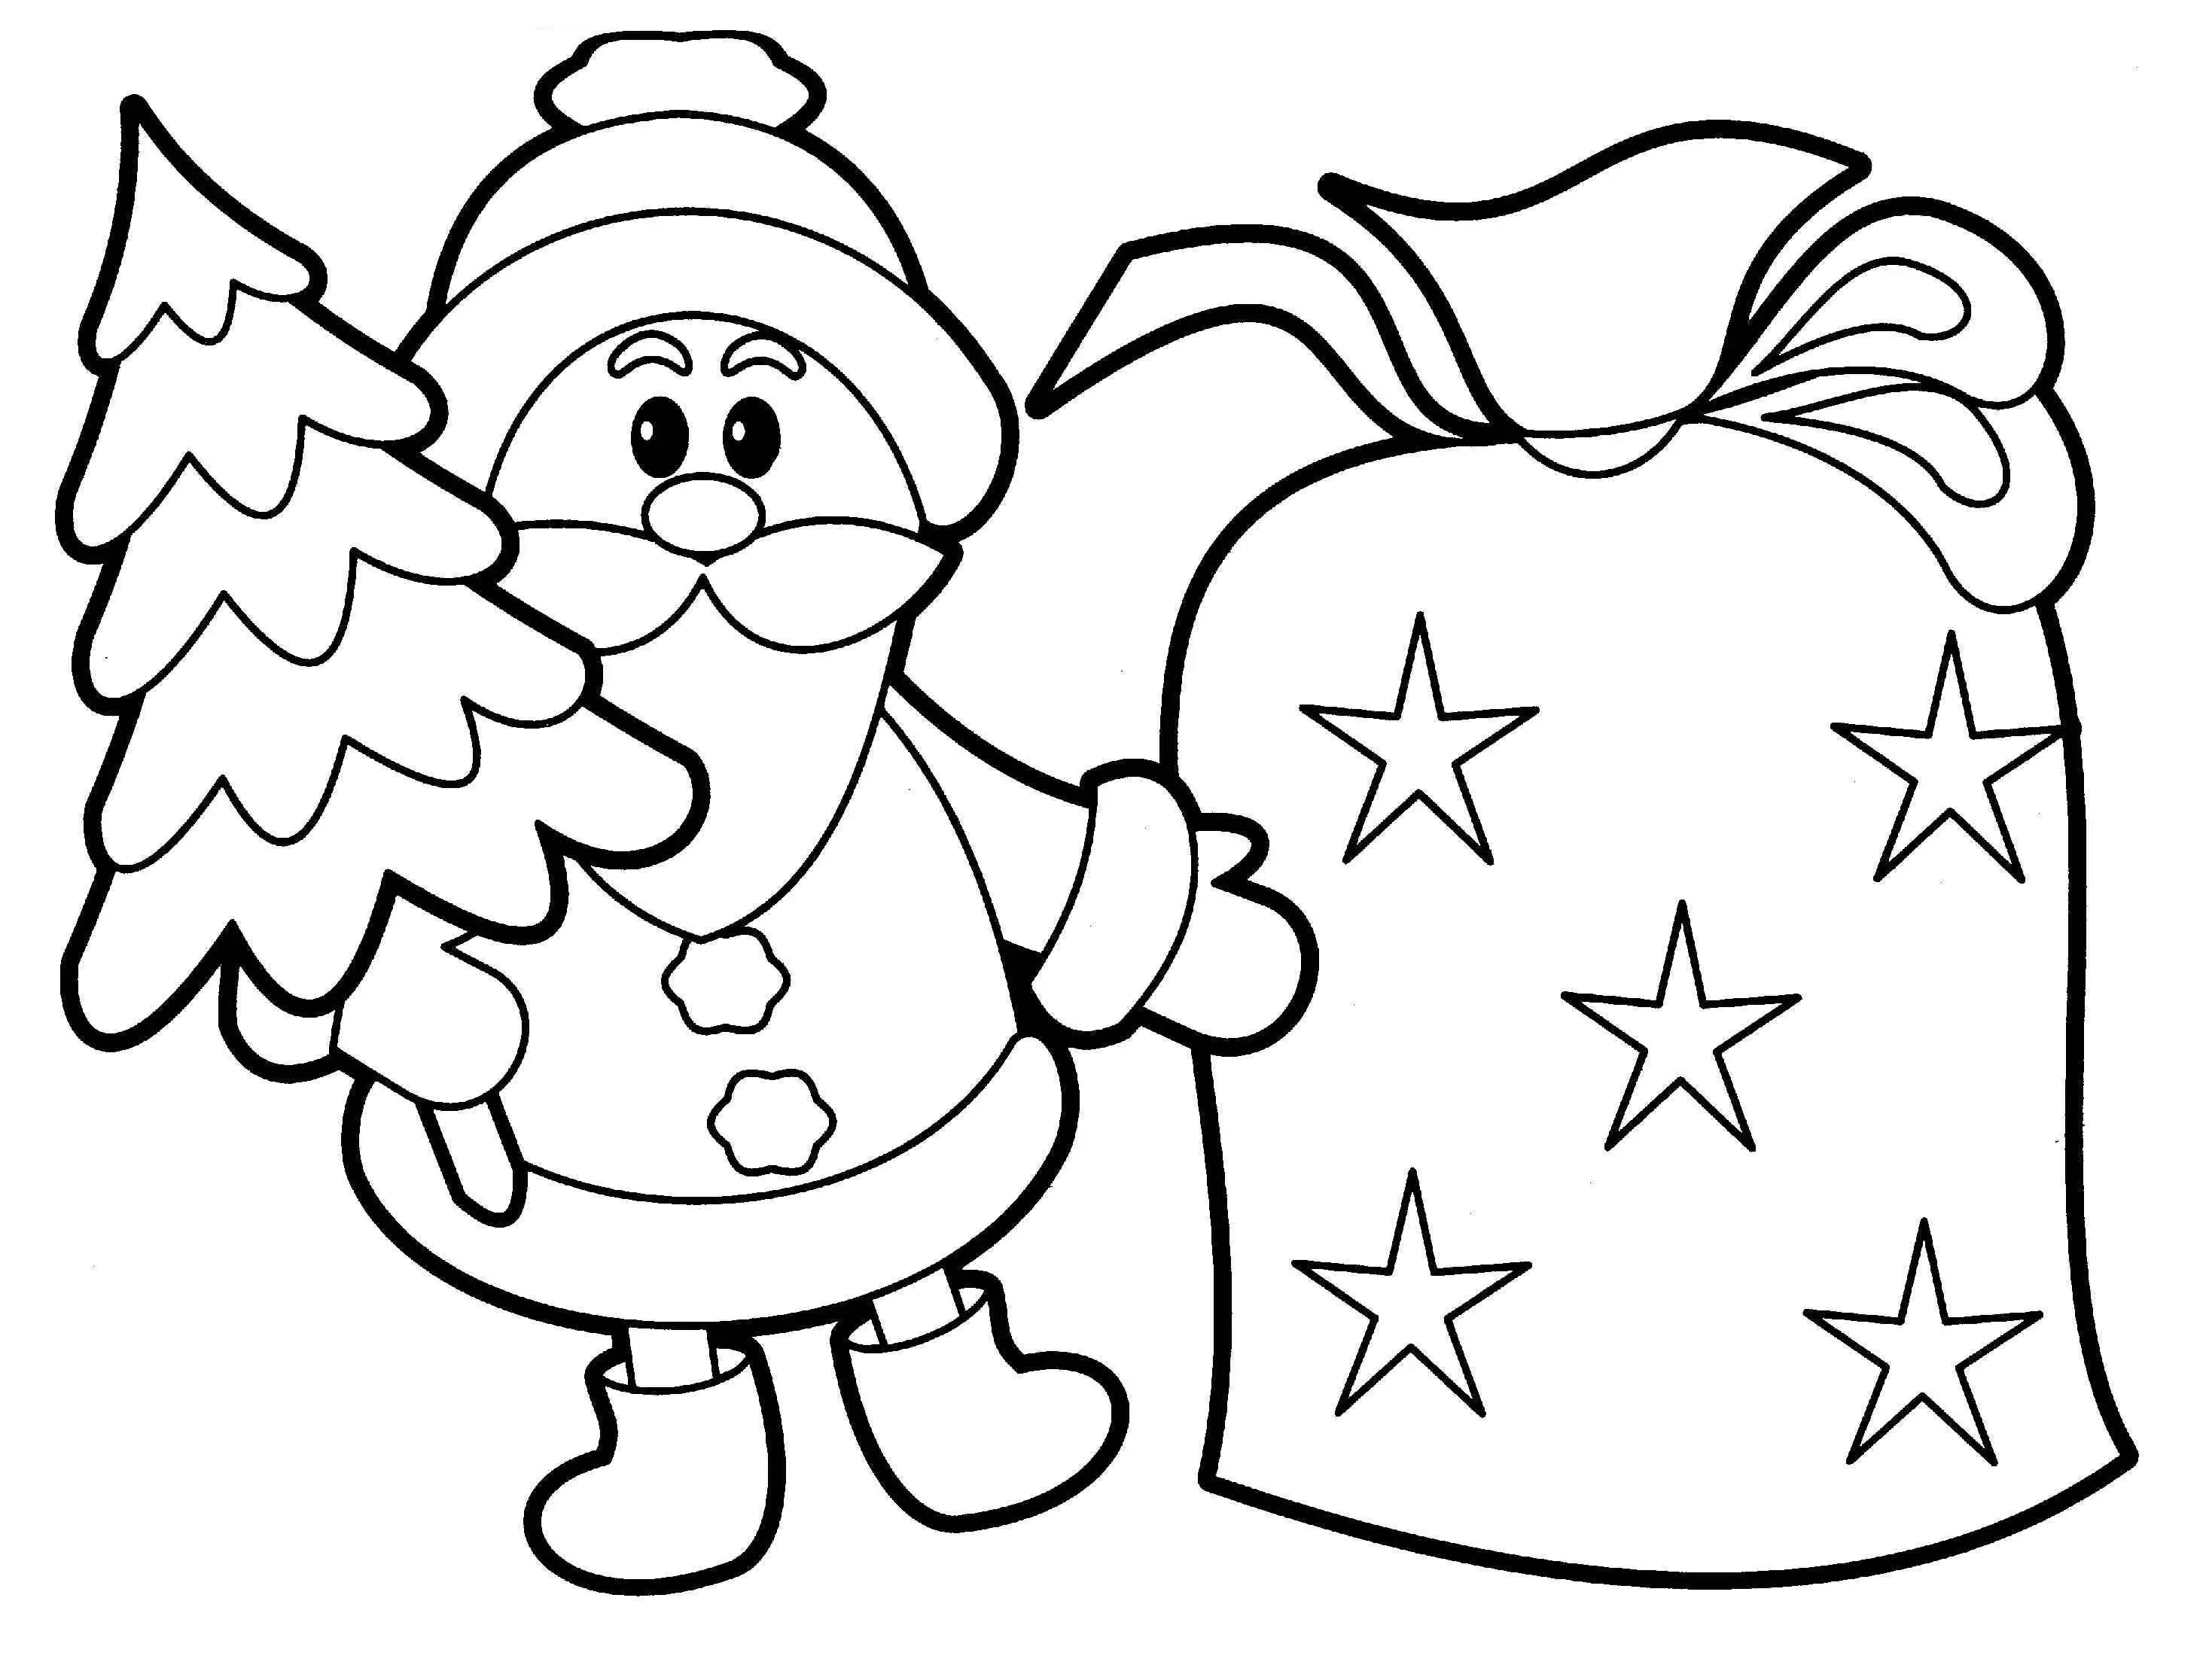 pin spongebob printable coloring pages pictures gangsta on pinterest